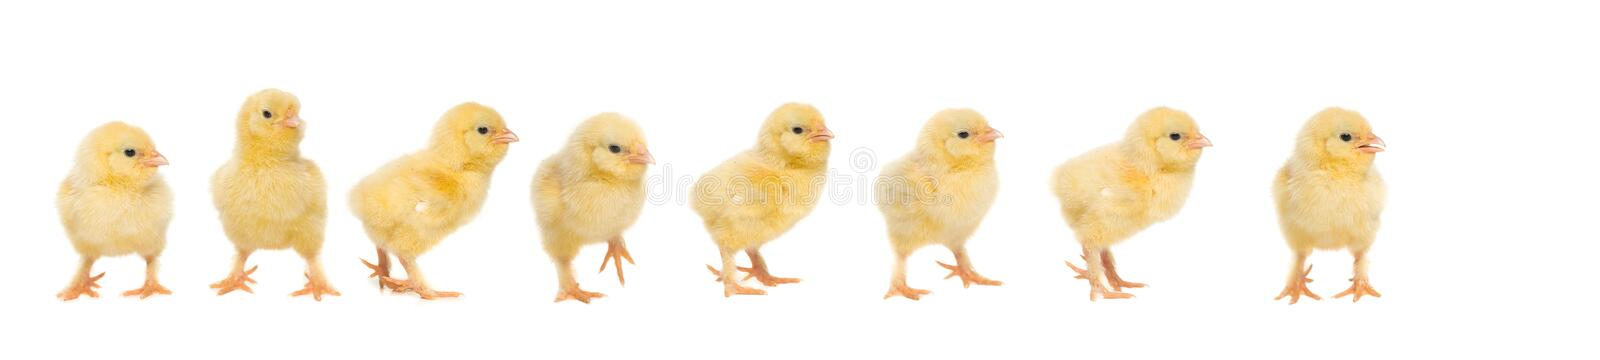 Download Eight Yellow Baby Chick Walking Behind Each Other Stock Photo - Image of behind, white: 95734340